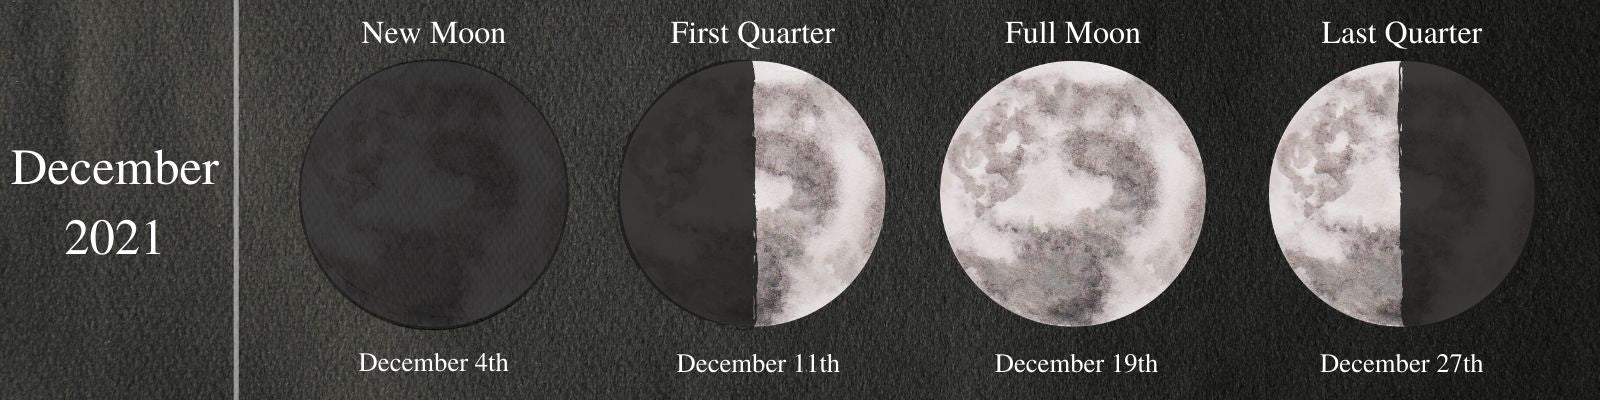 Moon Phases December 2021